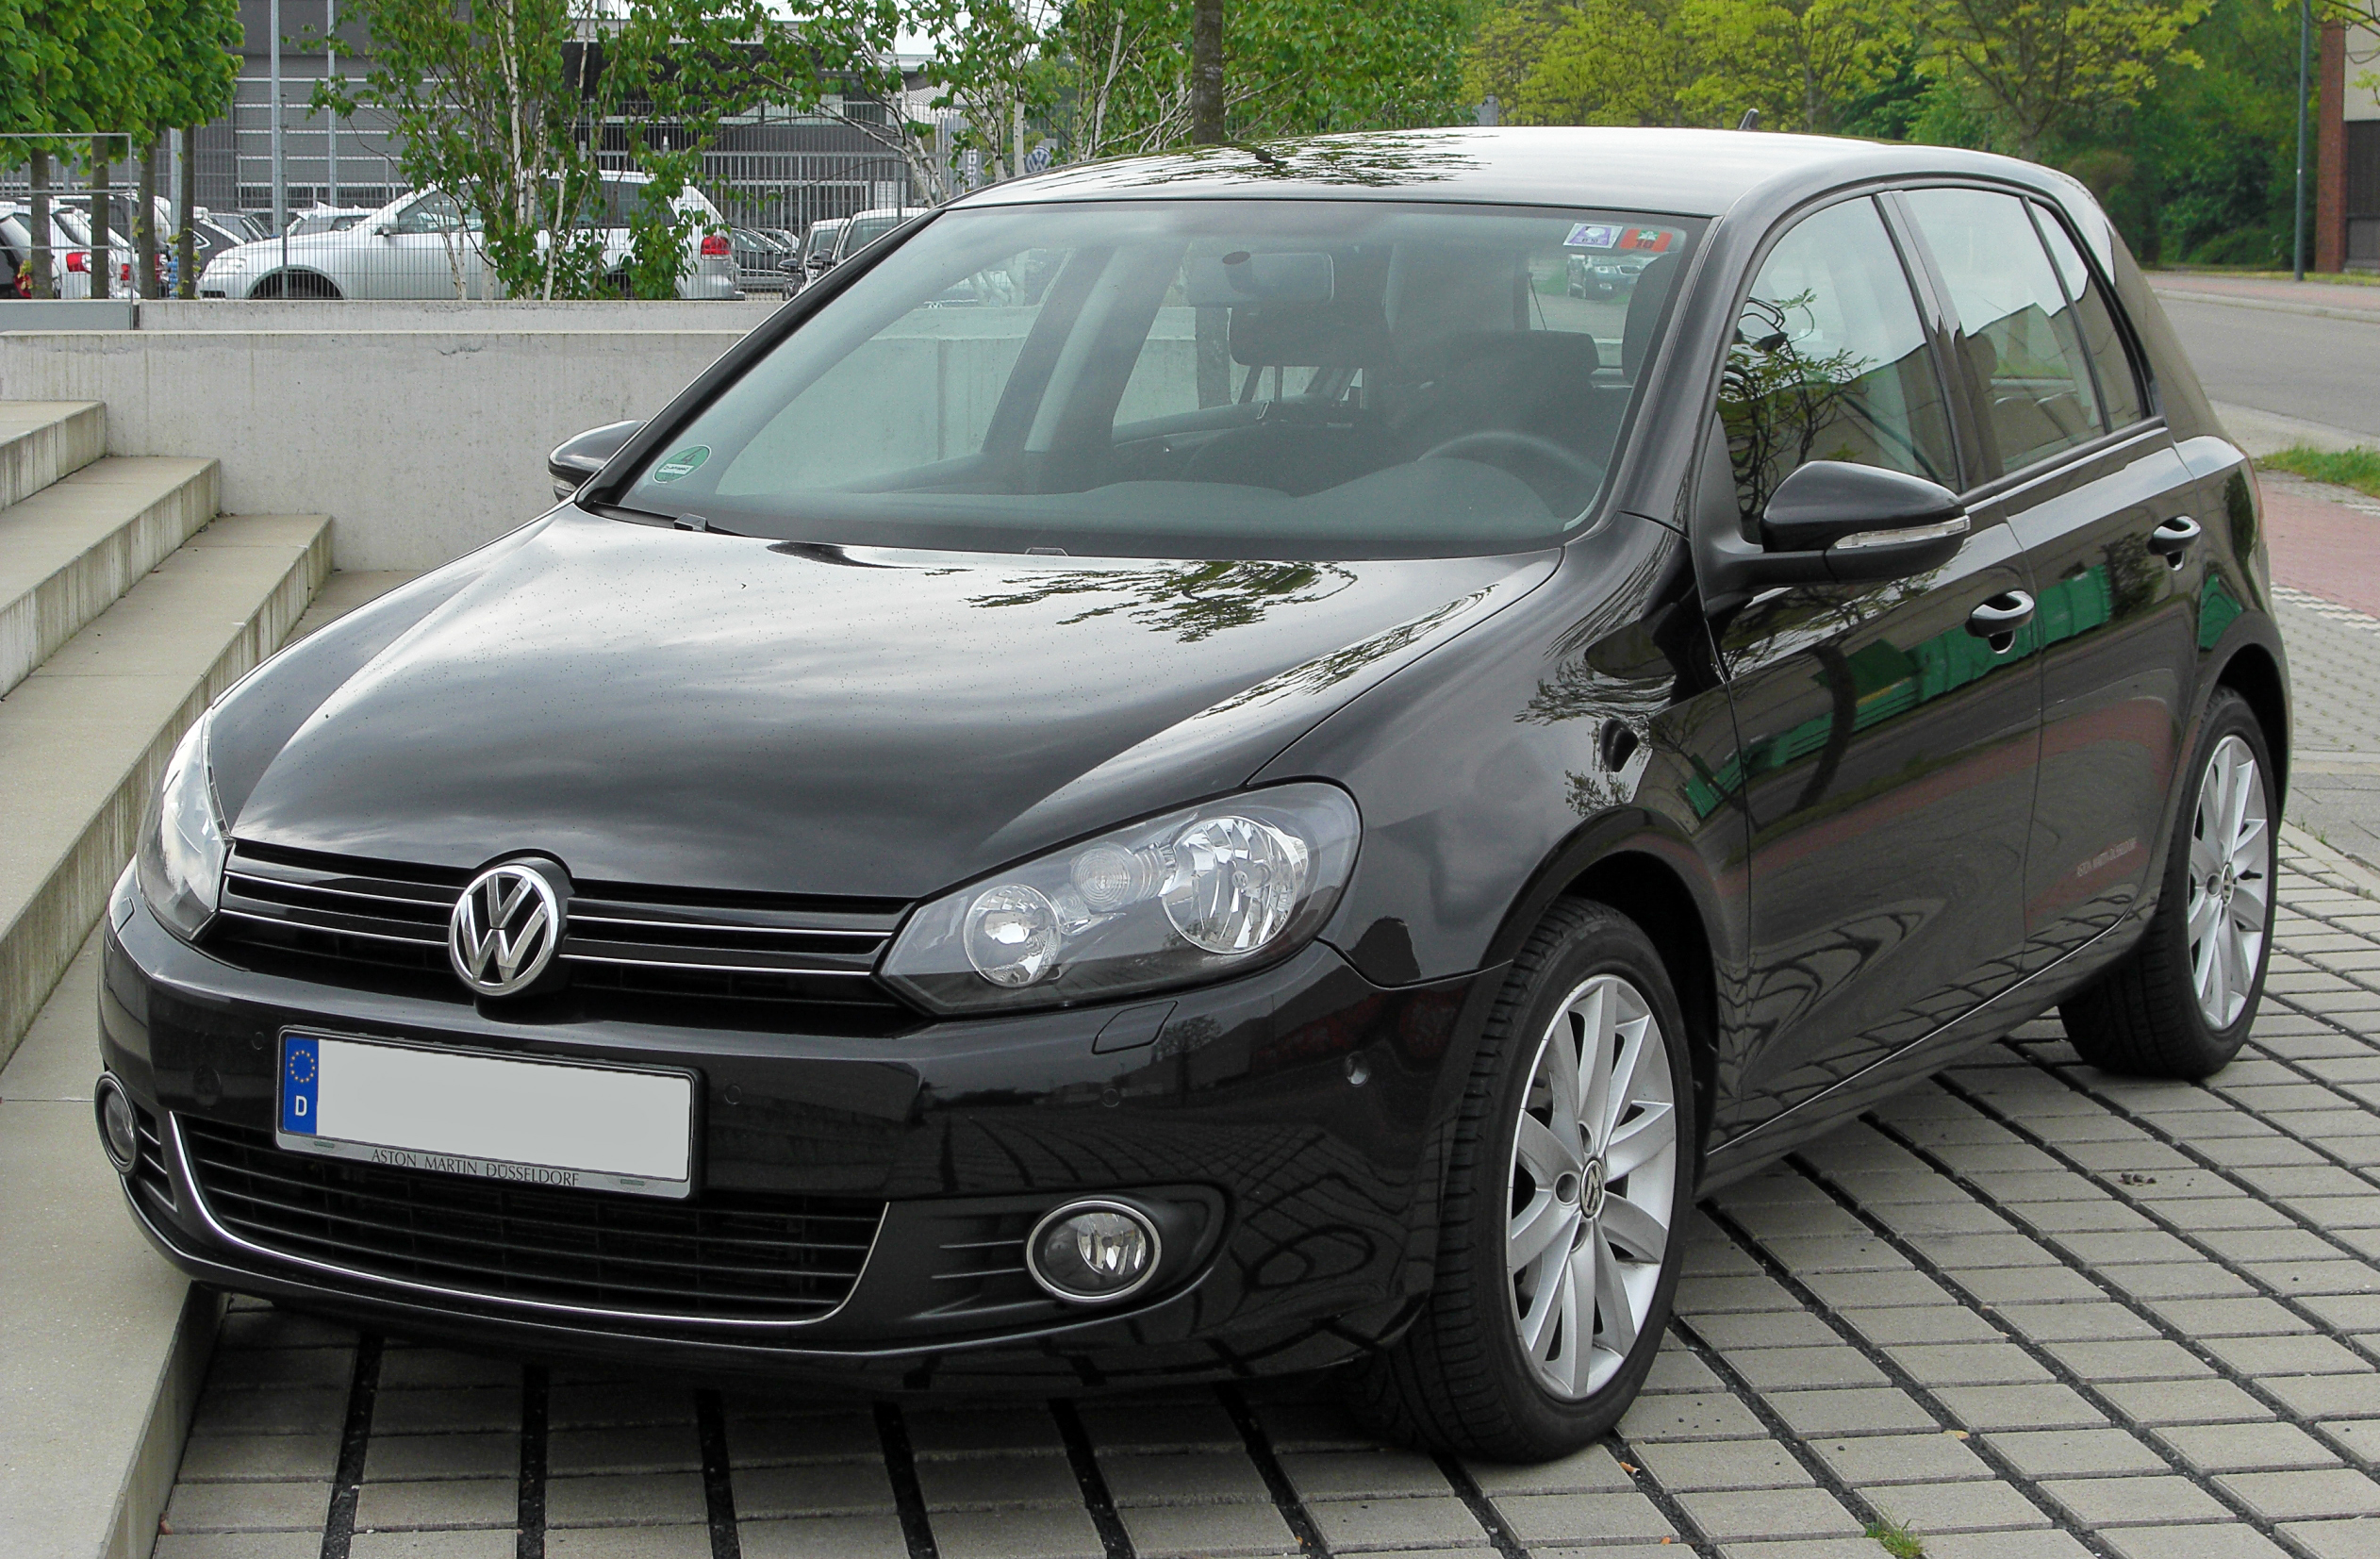 file vw golf vi 2 0 tdi front wikimedia commons. Black Bedroom Furniture Sets. Home Design Ideas